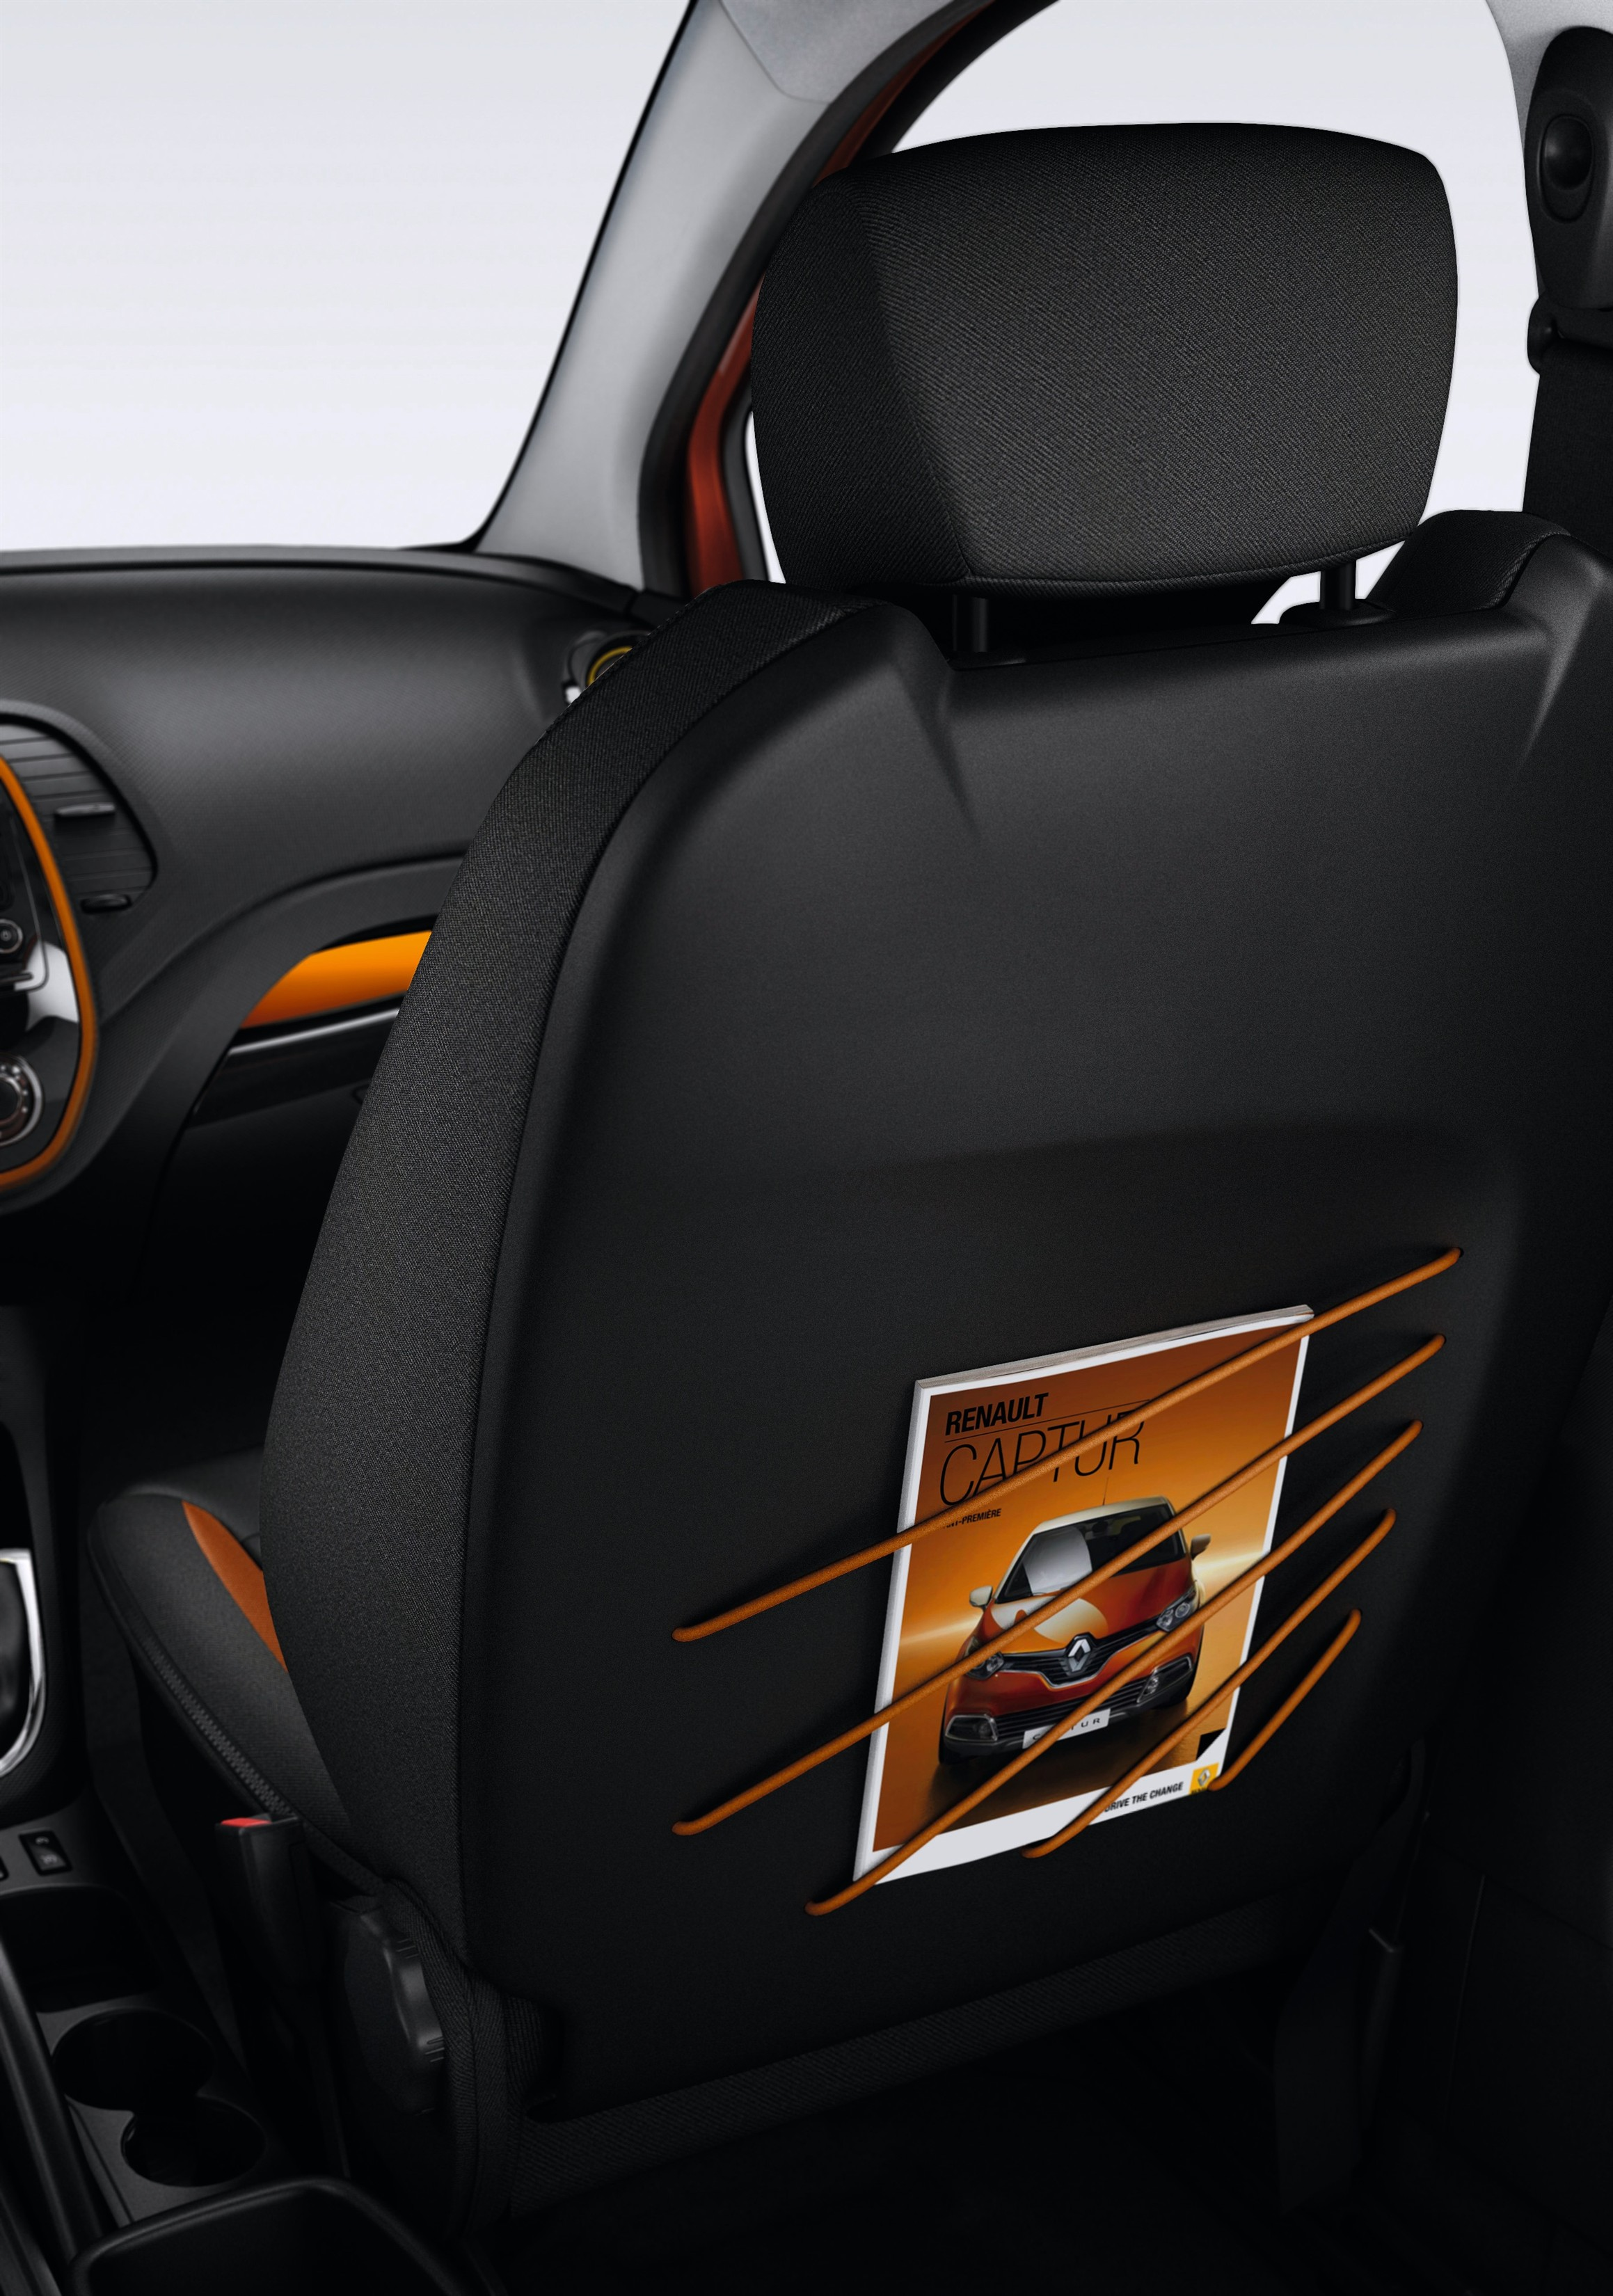 Renault Captur_Mesh map pockets on the front seat backs